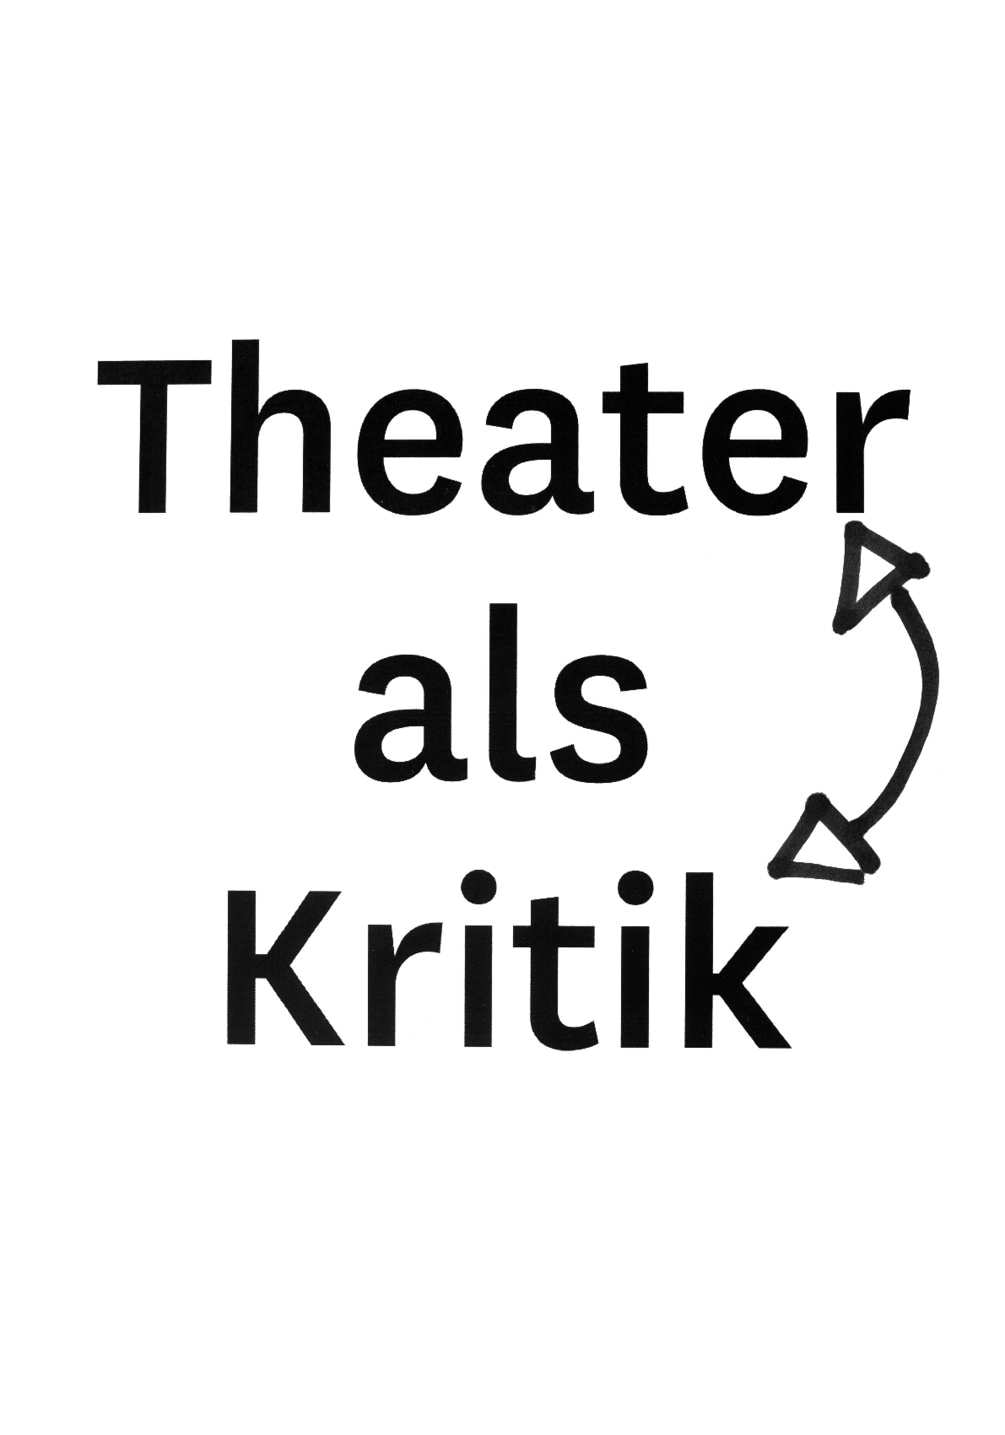 theater-as-critique-slip-12-1005x1435px